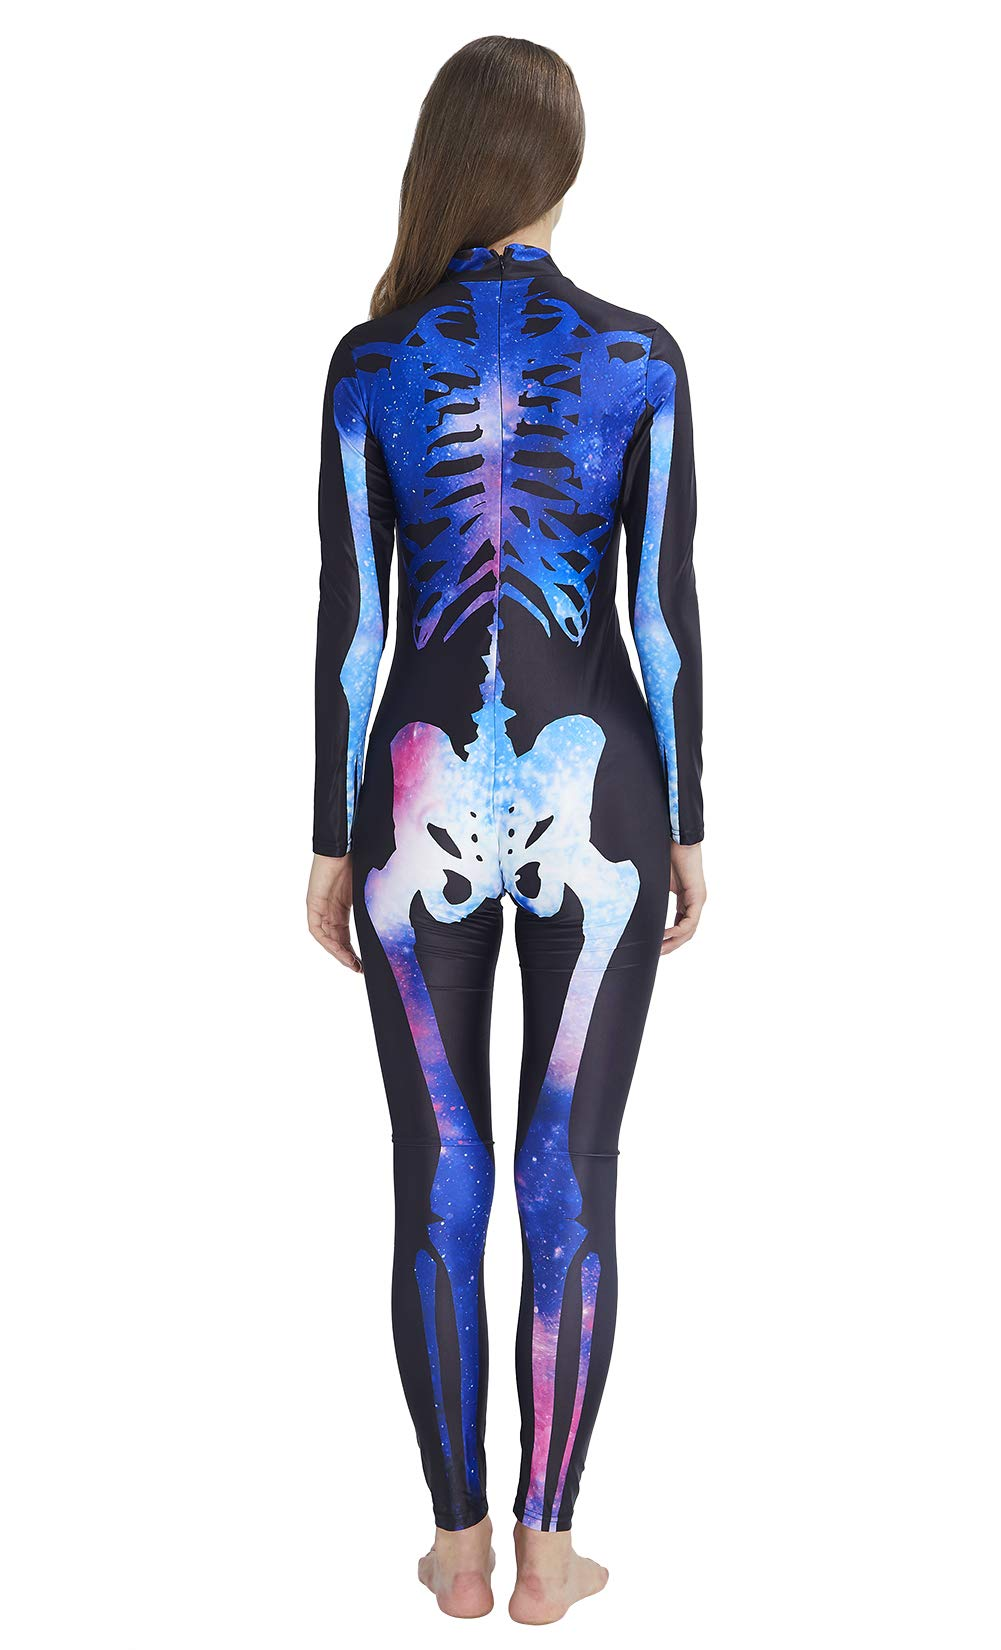 RAISEVERN 3D Galaxy Starry Snazzy Zombie Hallowmas Skull Costume Novelty Cosplay Zip Up Onesies Skeleton Bodysuit Outfit Catsuit Romper Glow in The Dark